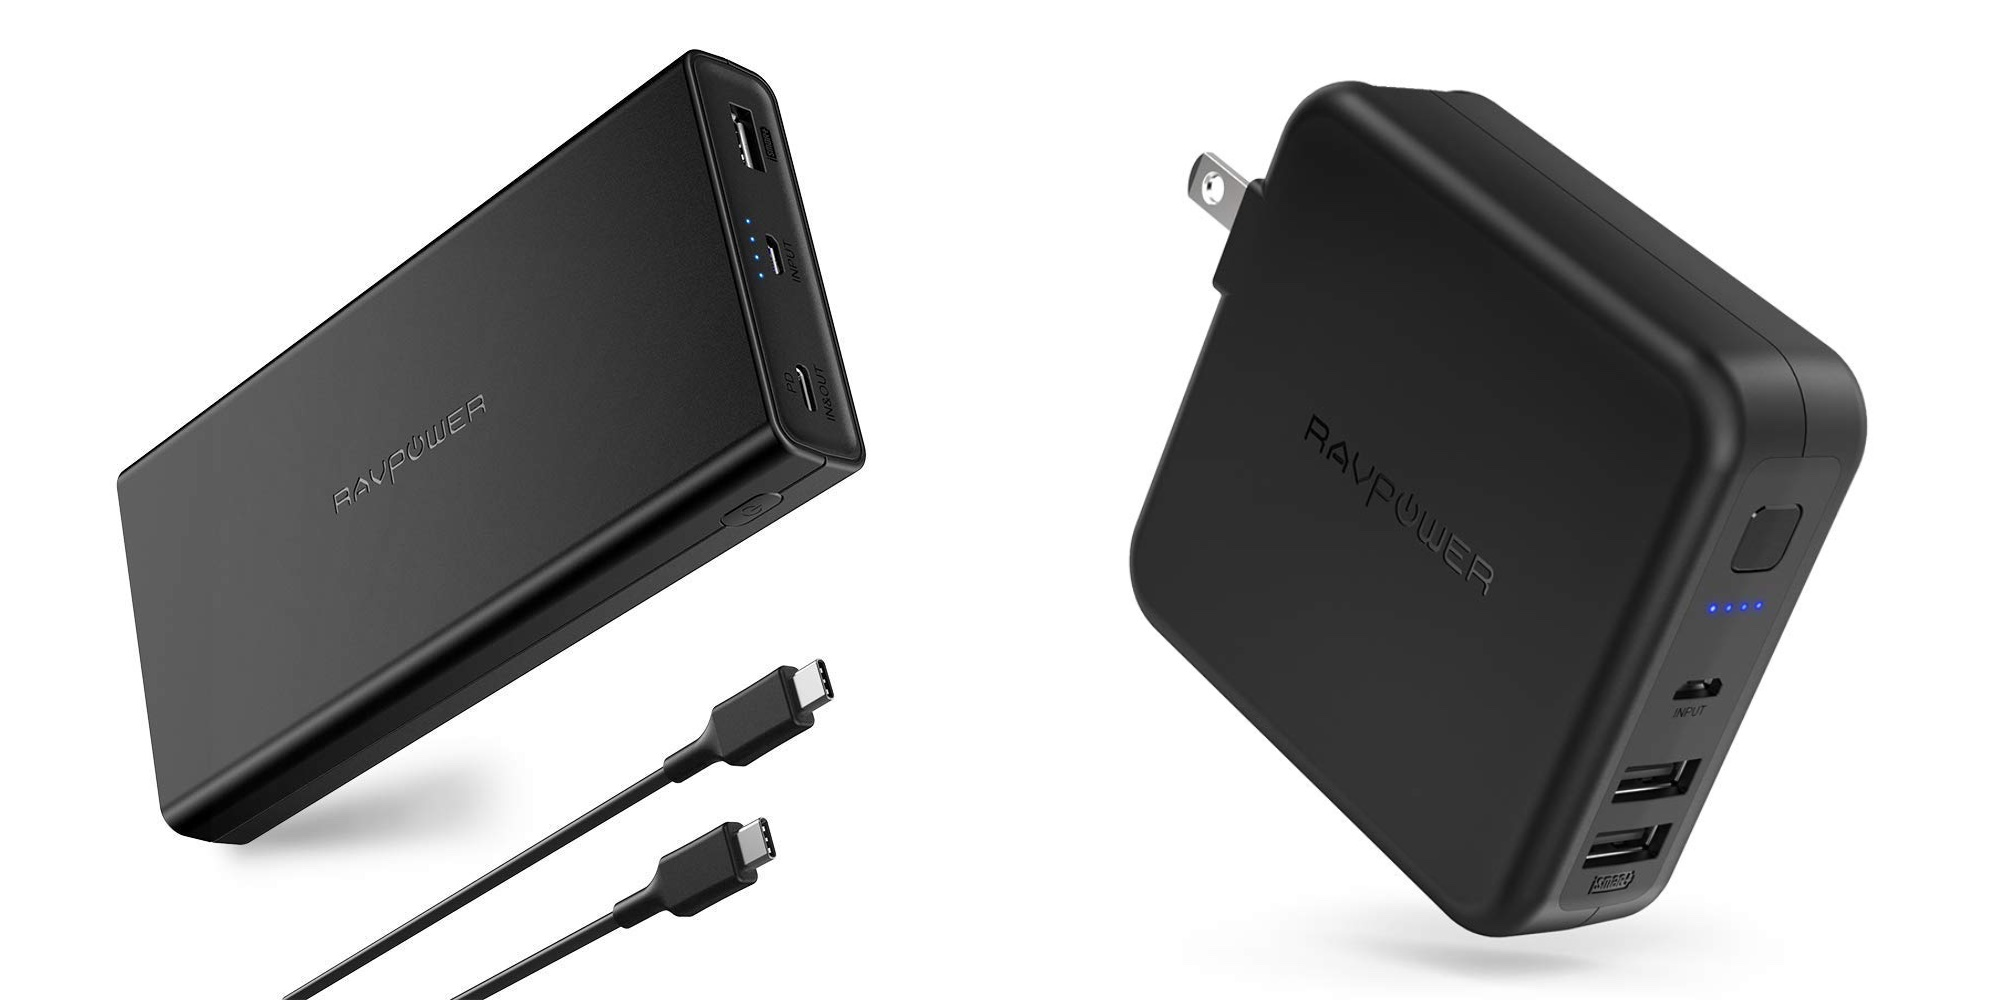 Smartphone Accessories: RAVPower USB-C PD 20100mAh Power Bank bundle $50, more